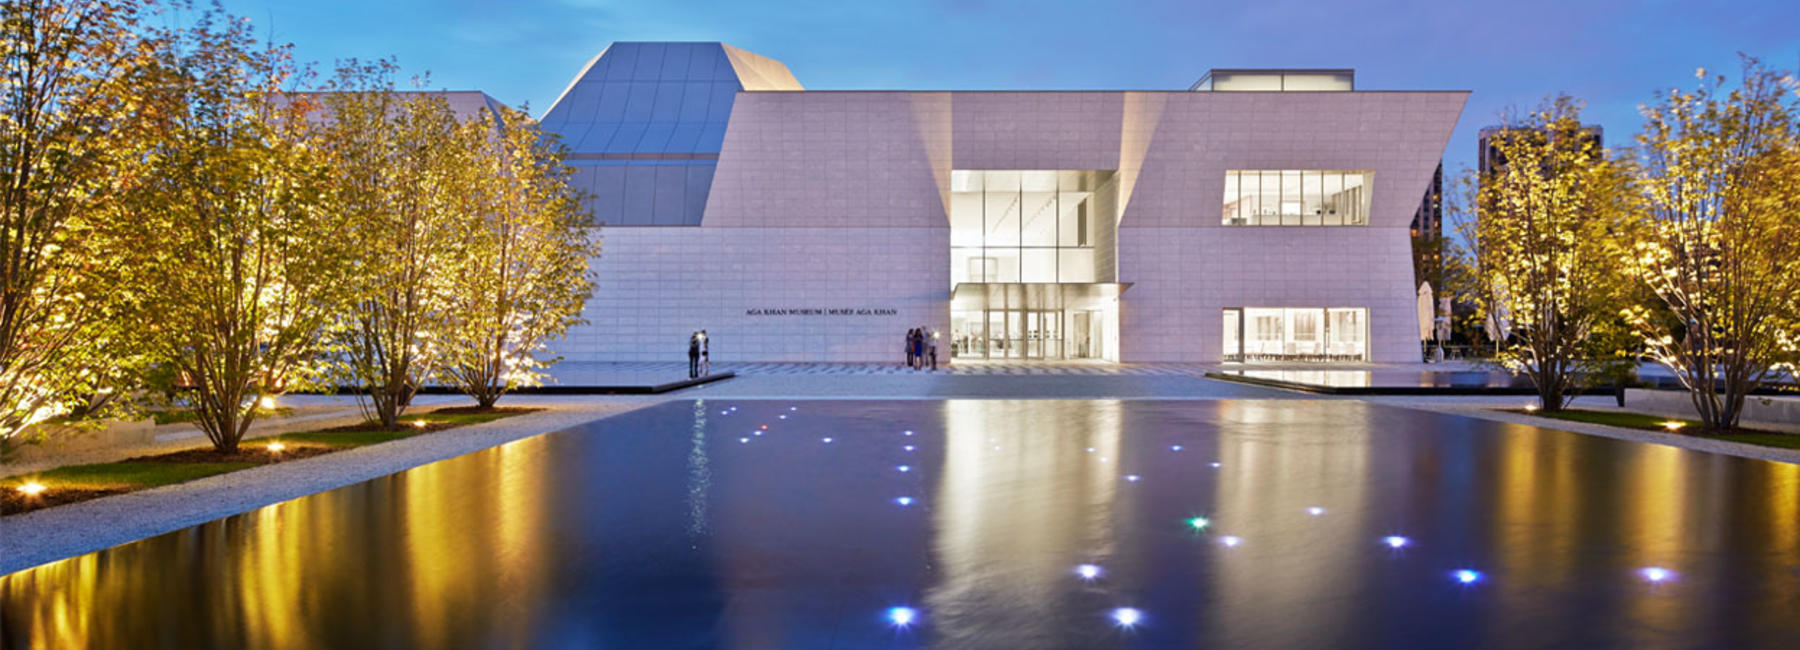 FREE ADMISSION TO THE AGA KHAN MUSEUM